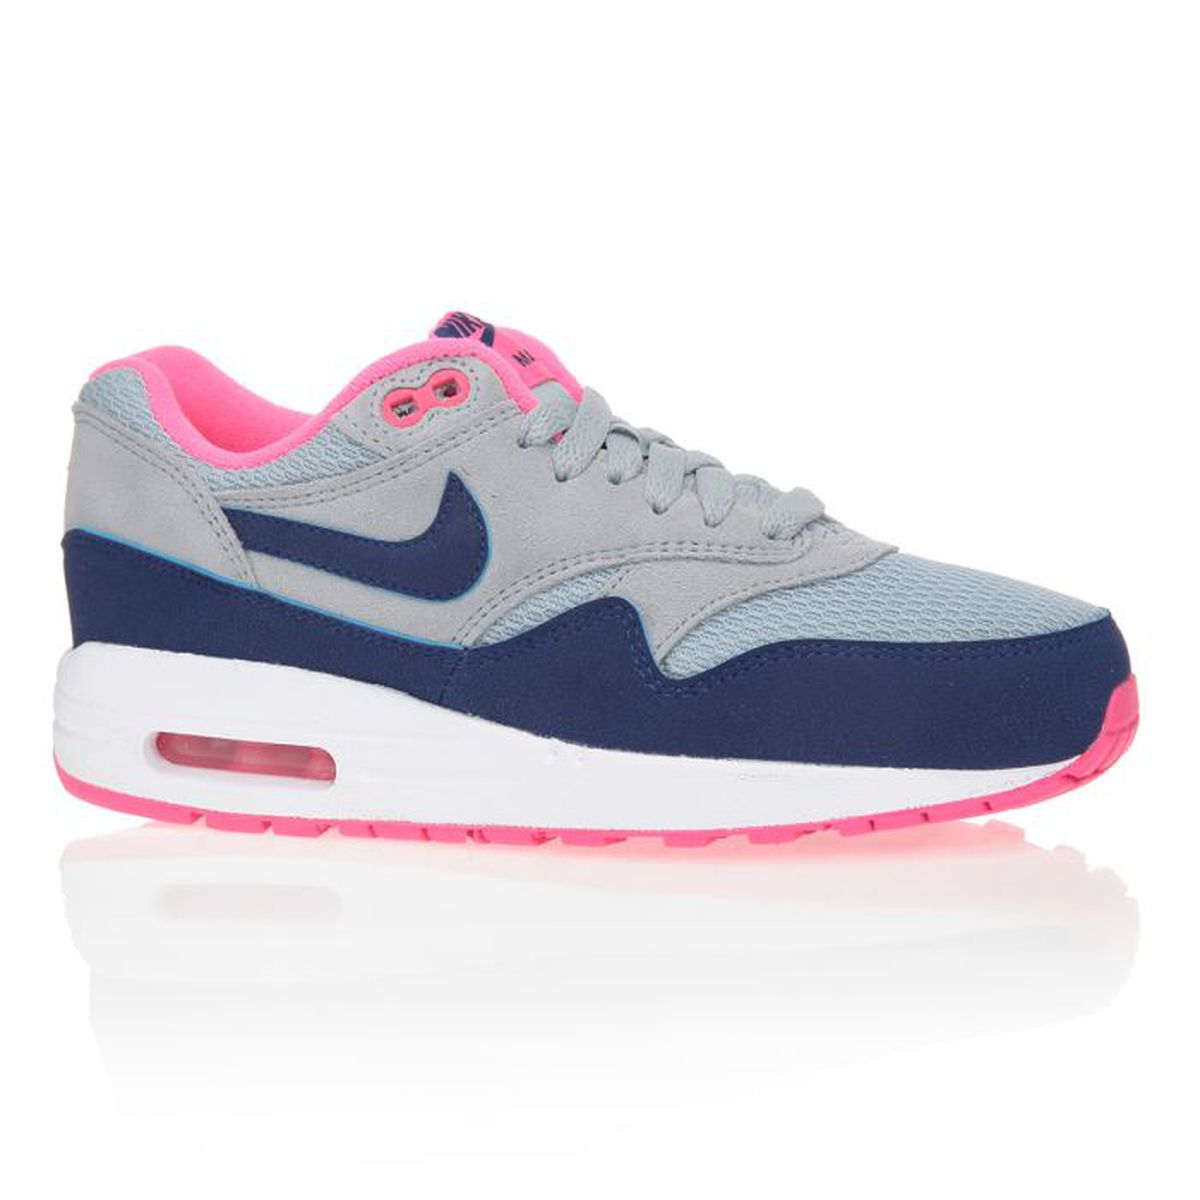 nike air max 1 femme pas cher nike air max femmes 30 40. Black Bedroom Furniture Sets. Home Design Ideas